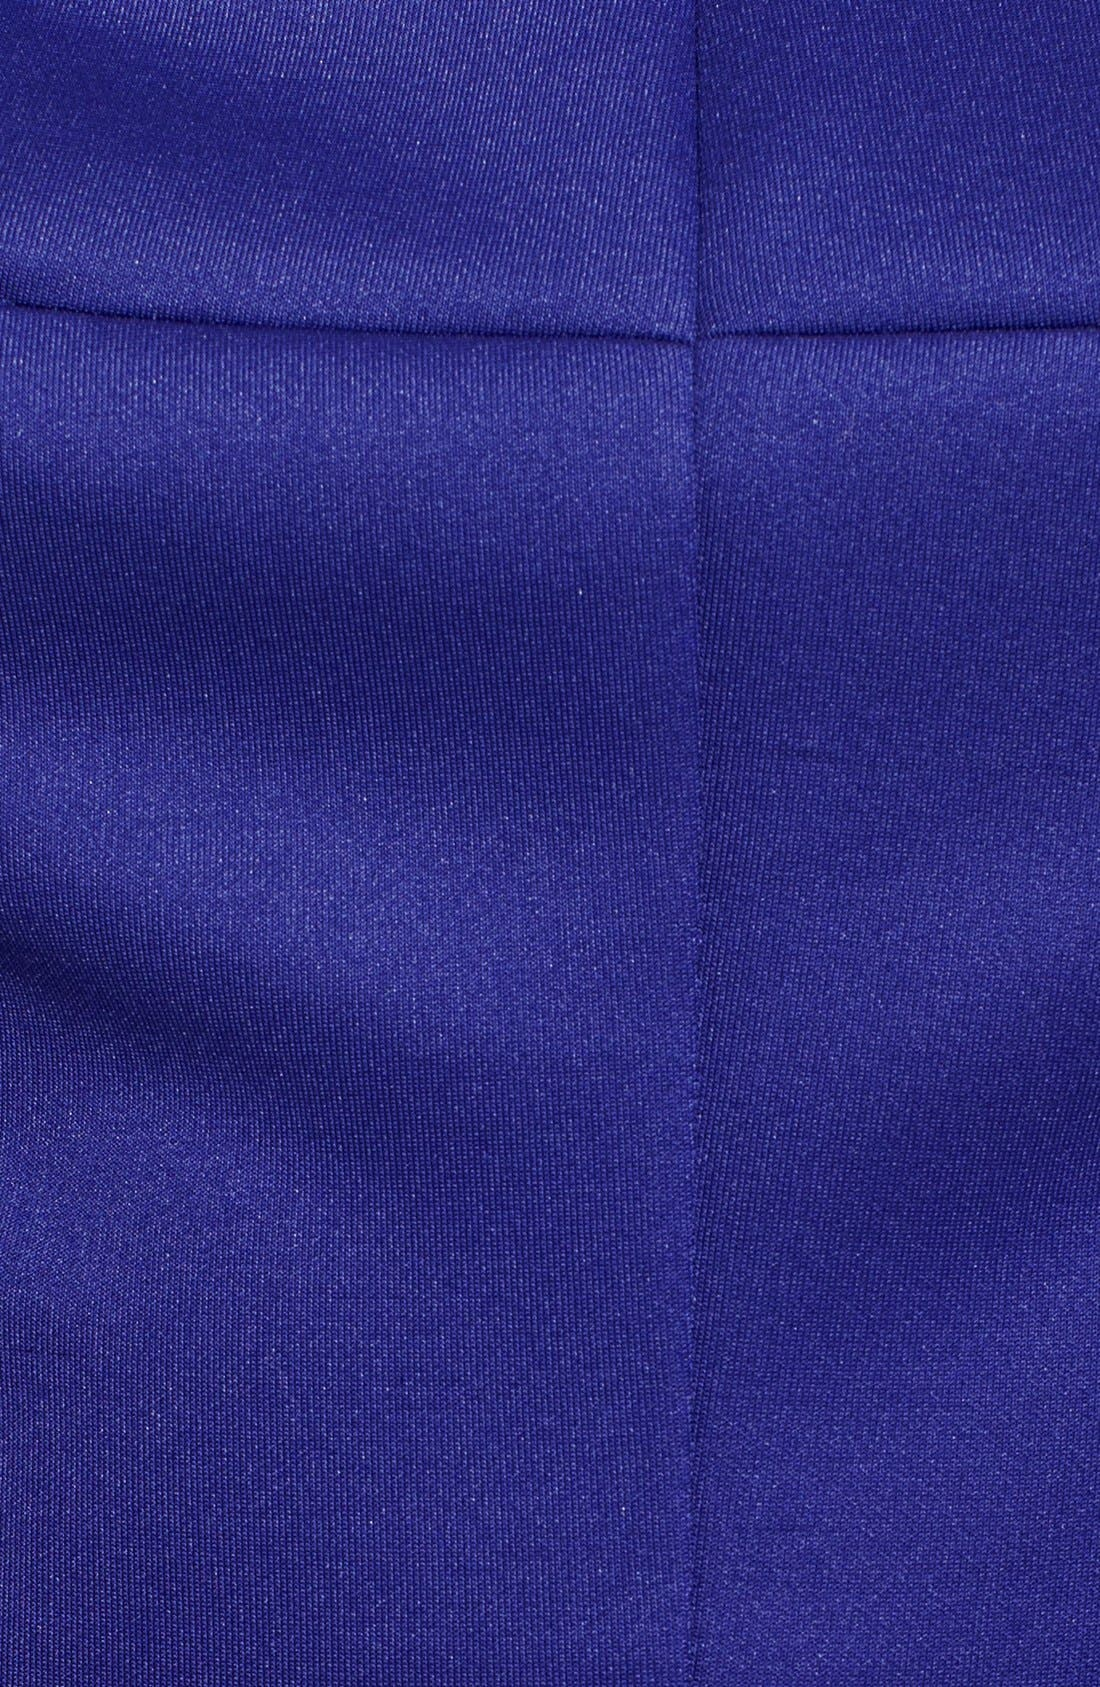 Alternate Image 3  - Milly Seamed Detail Shift Dress